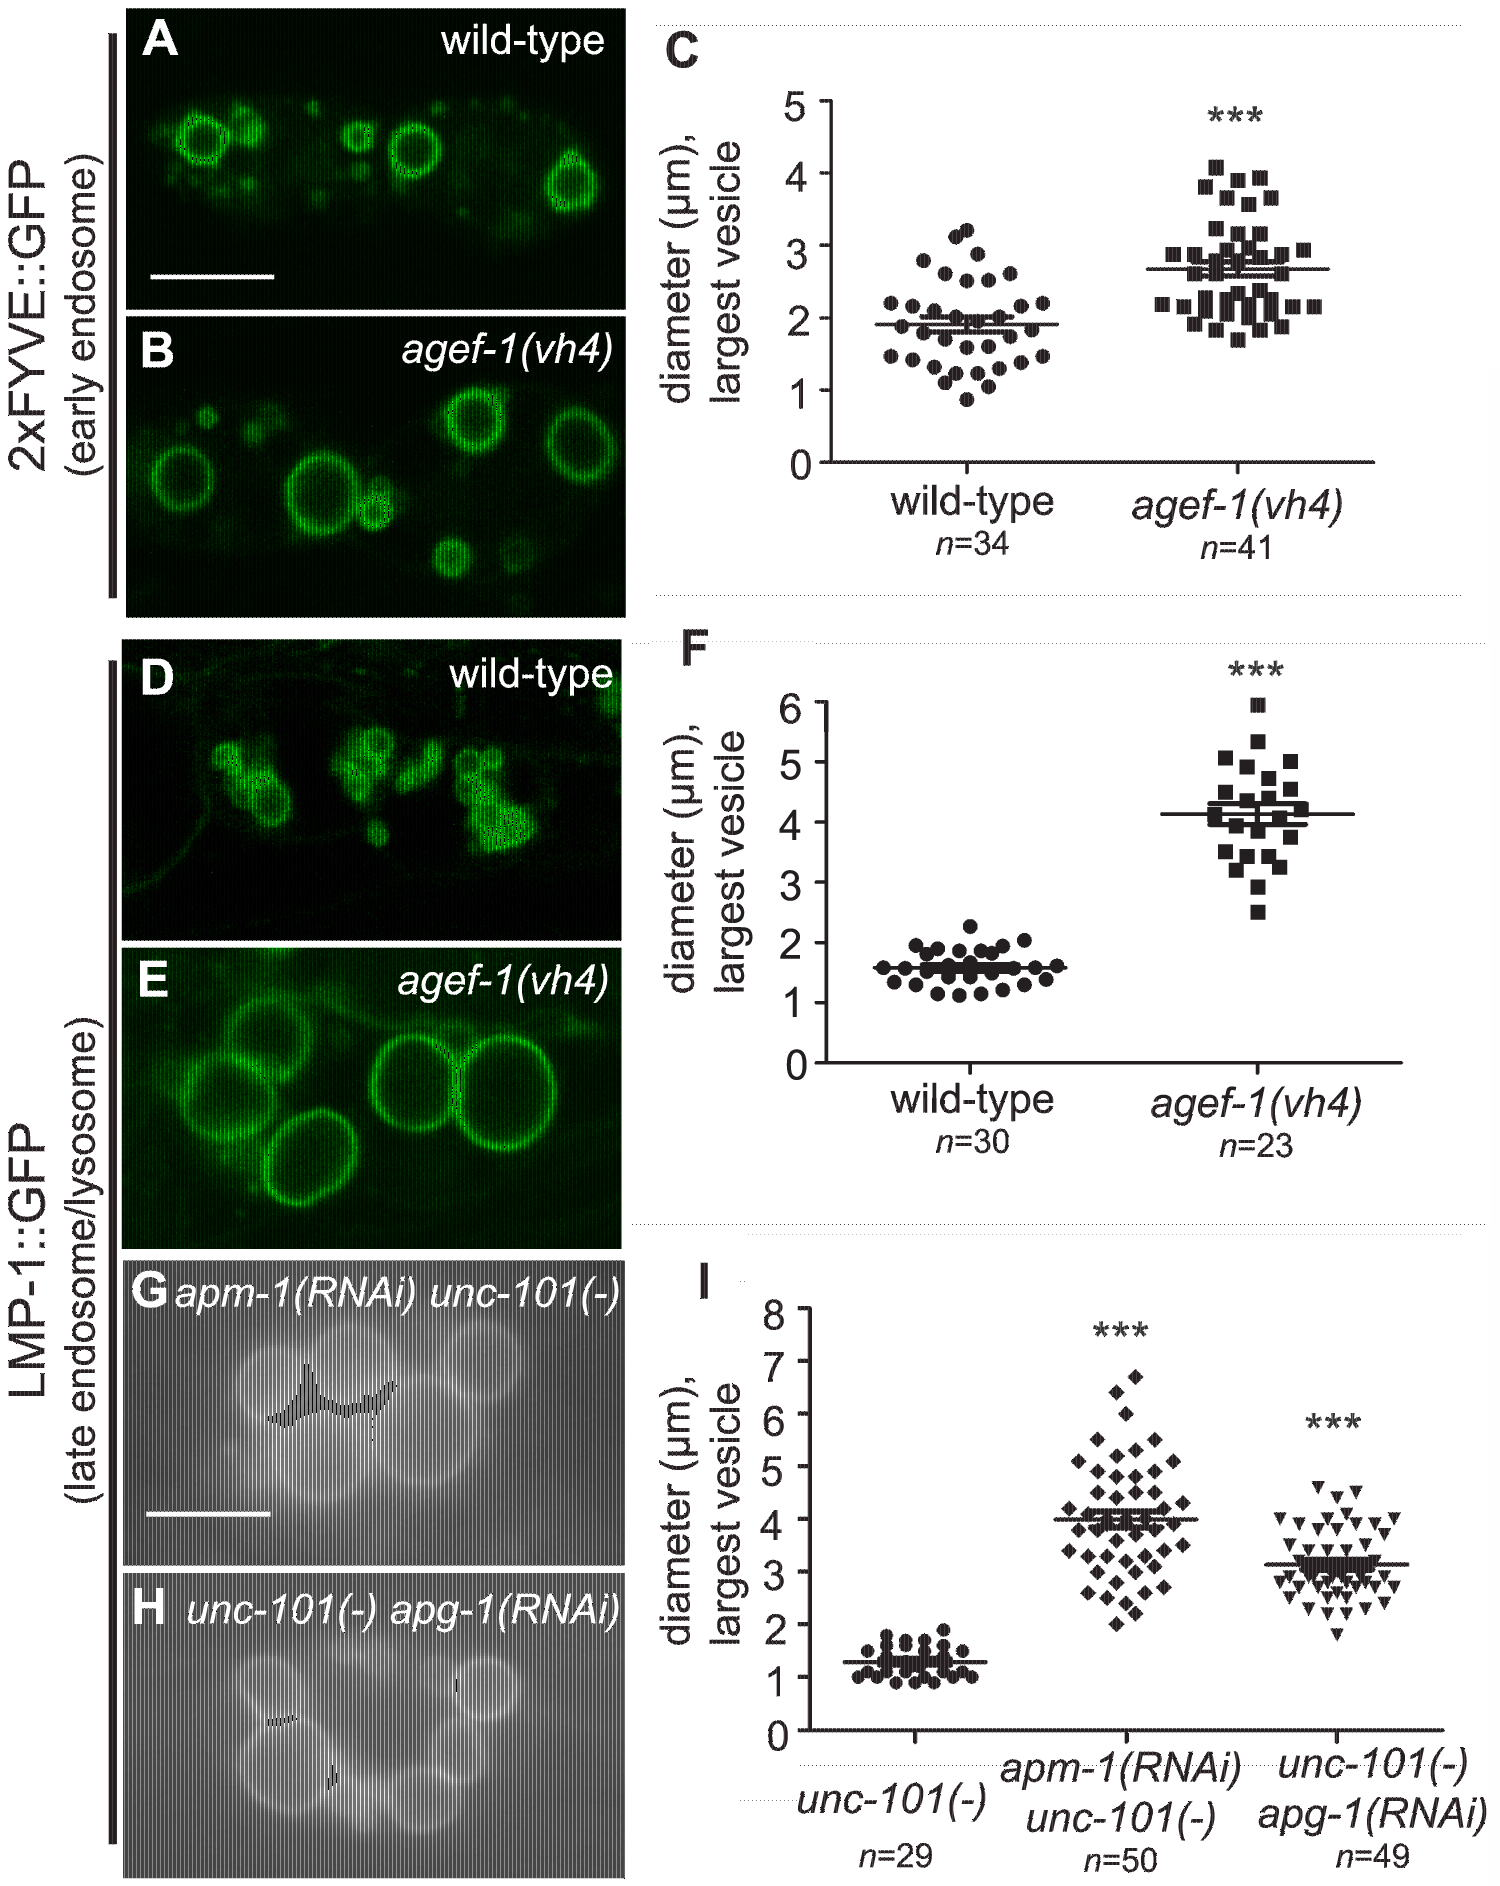 AGEF-1 and the AP-1 complex regulate the size of late endosomes/lysosomes in coelomocytes.